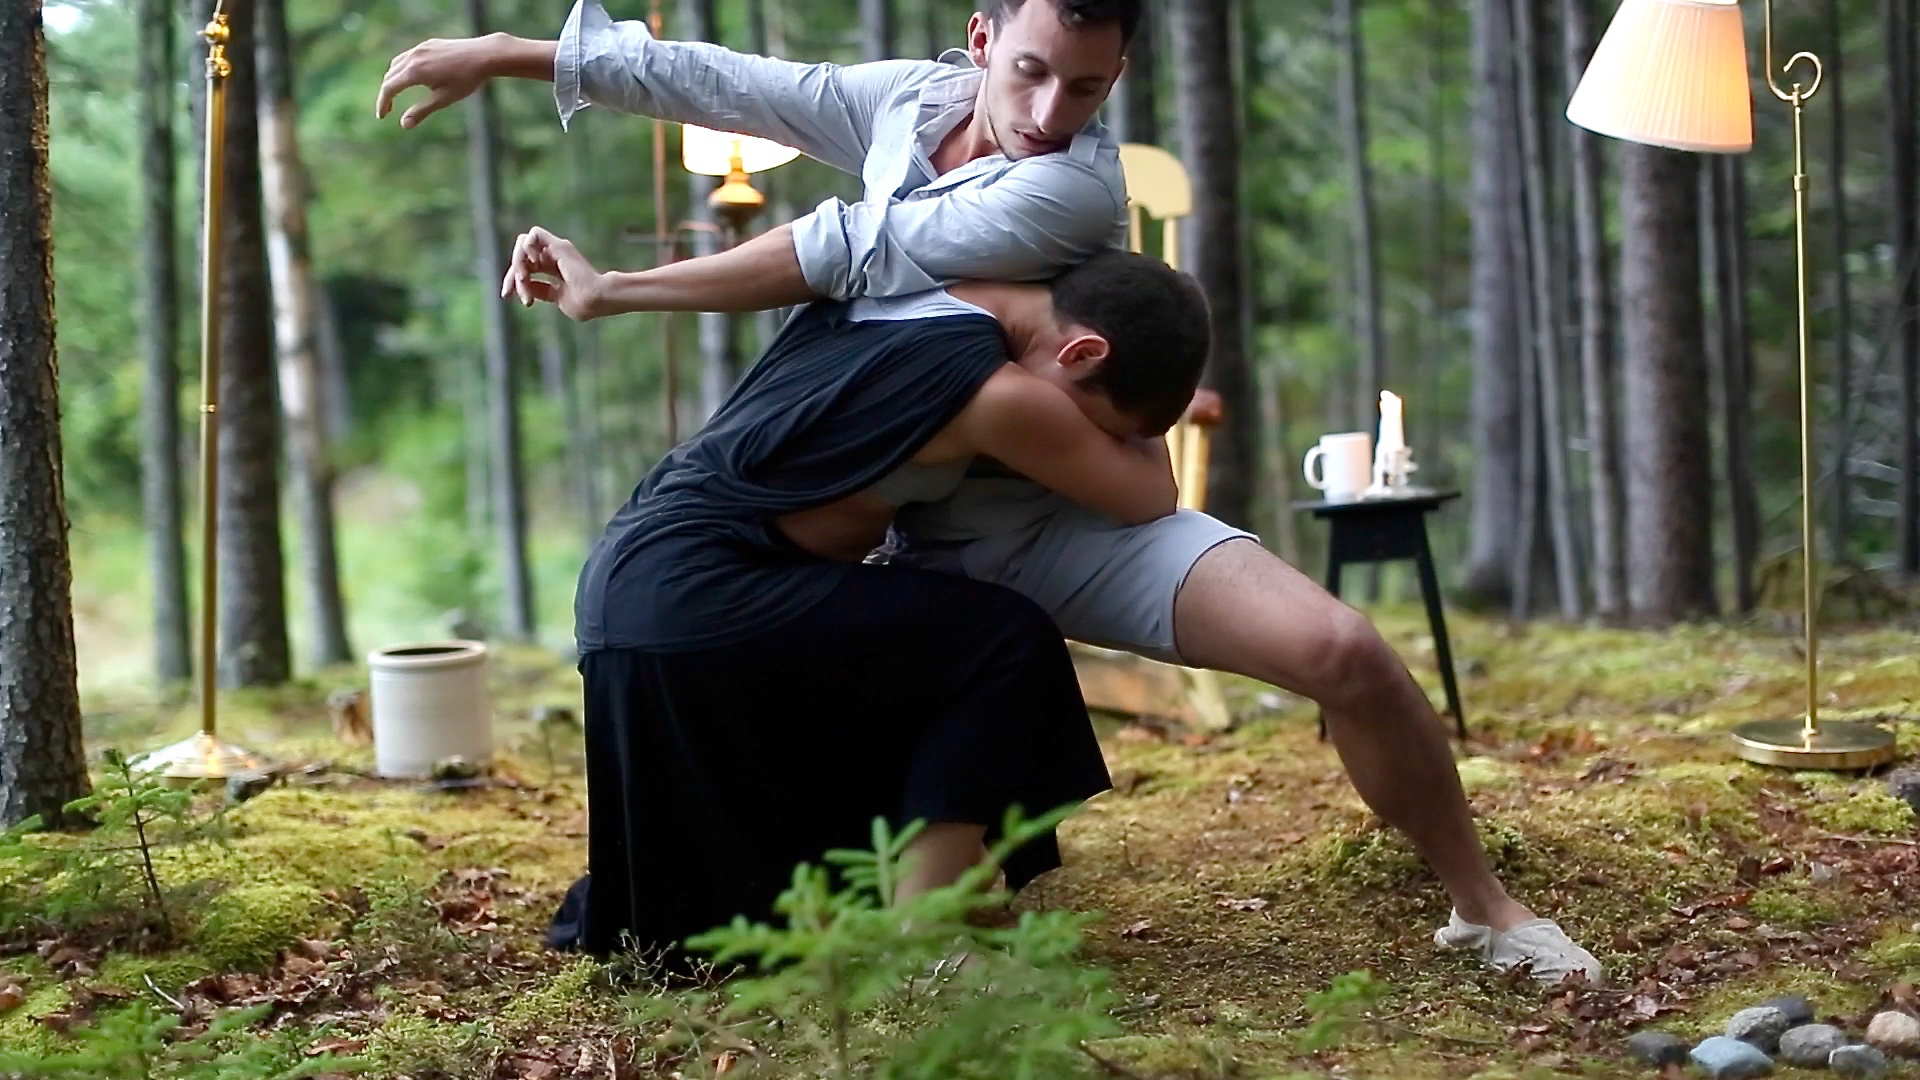 The Weight - A couple dances through an abusive relationship, not willing to let go of each other.